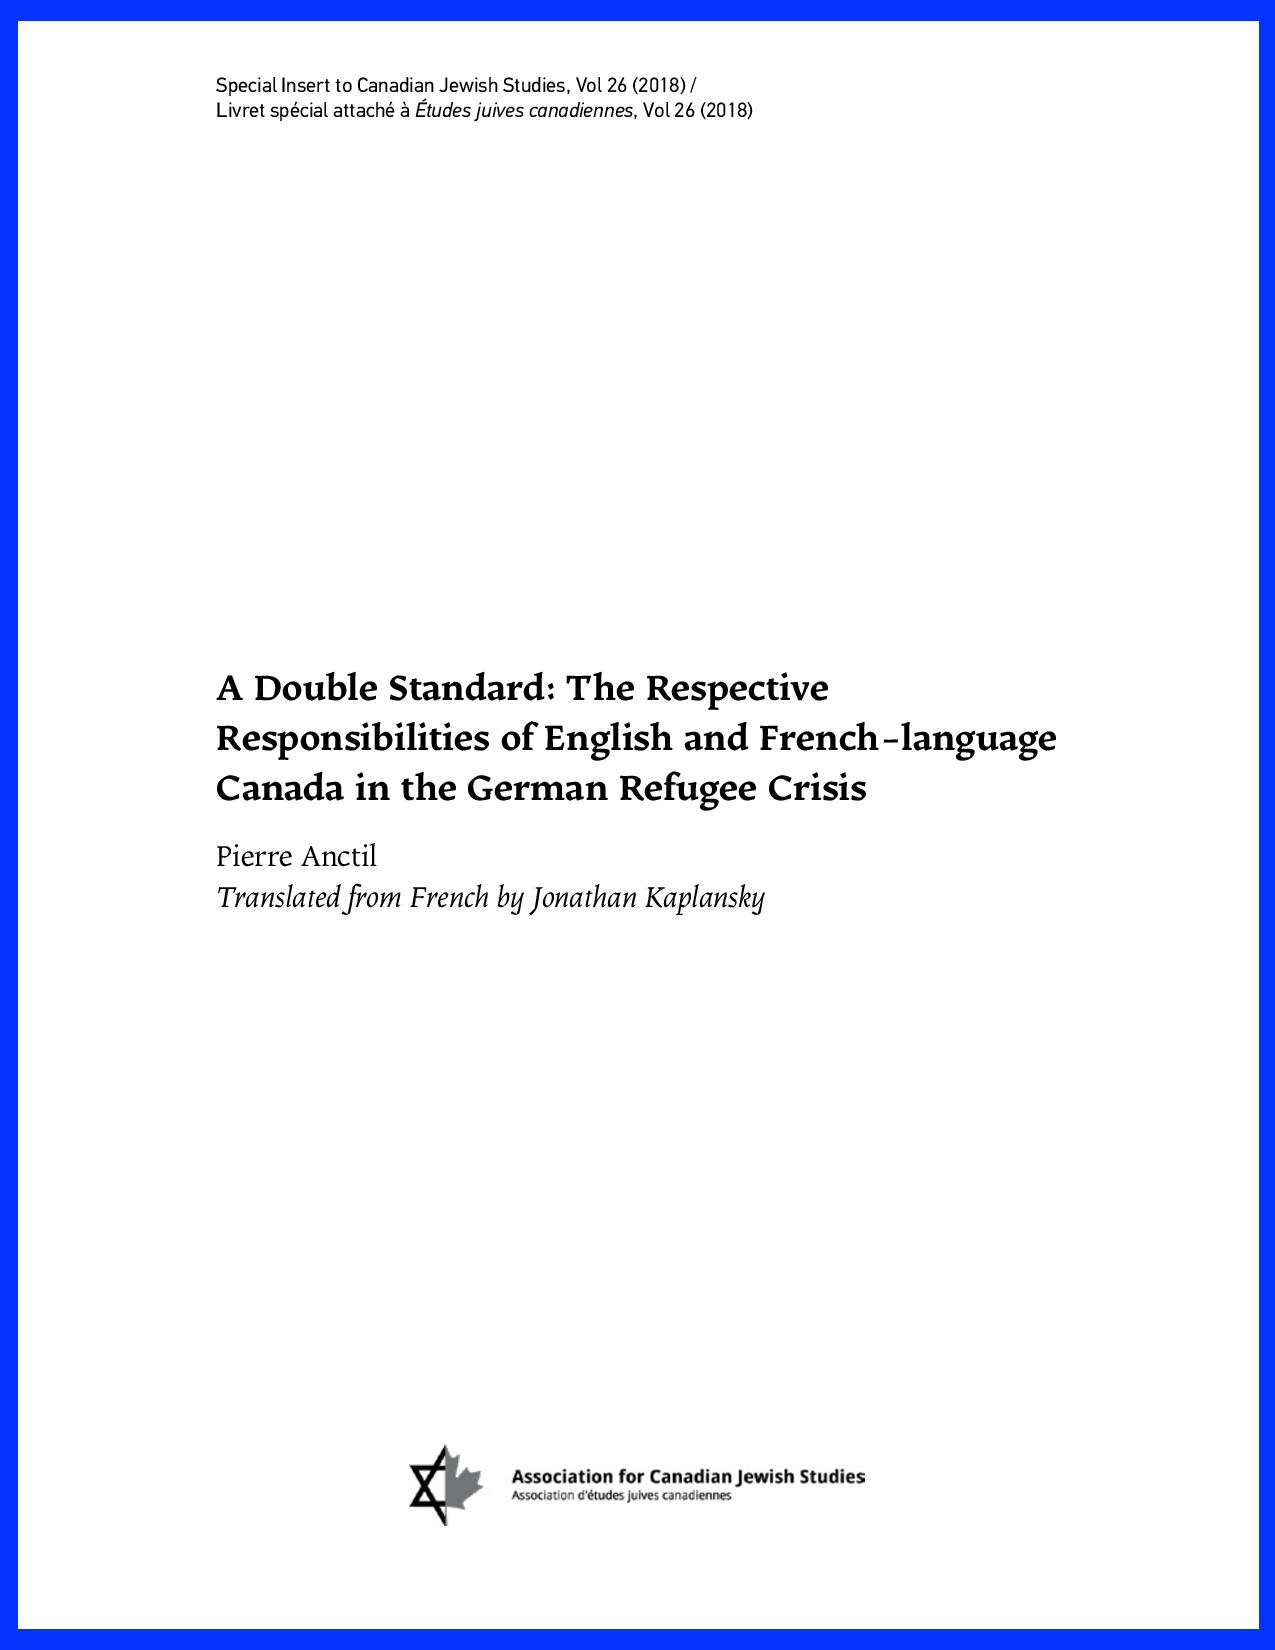 View Vol. 26 No. 2 (2018): A Double Standard: The Respective Responsibilities of English and French-Language Canada in the German Refugee Crisis